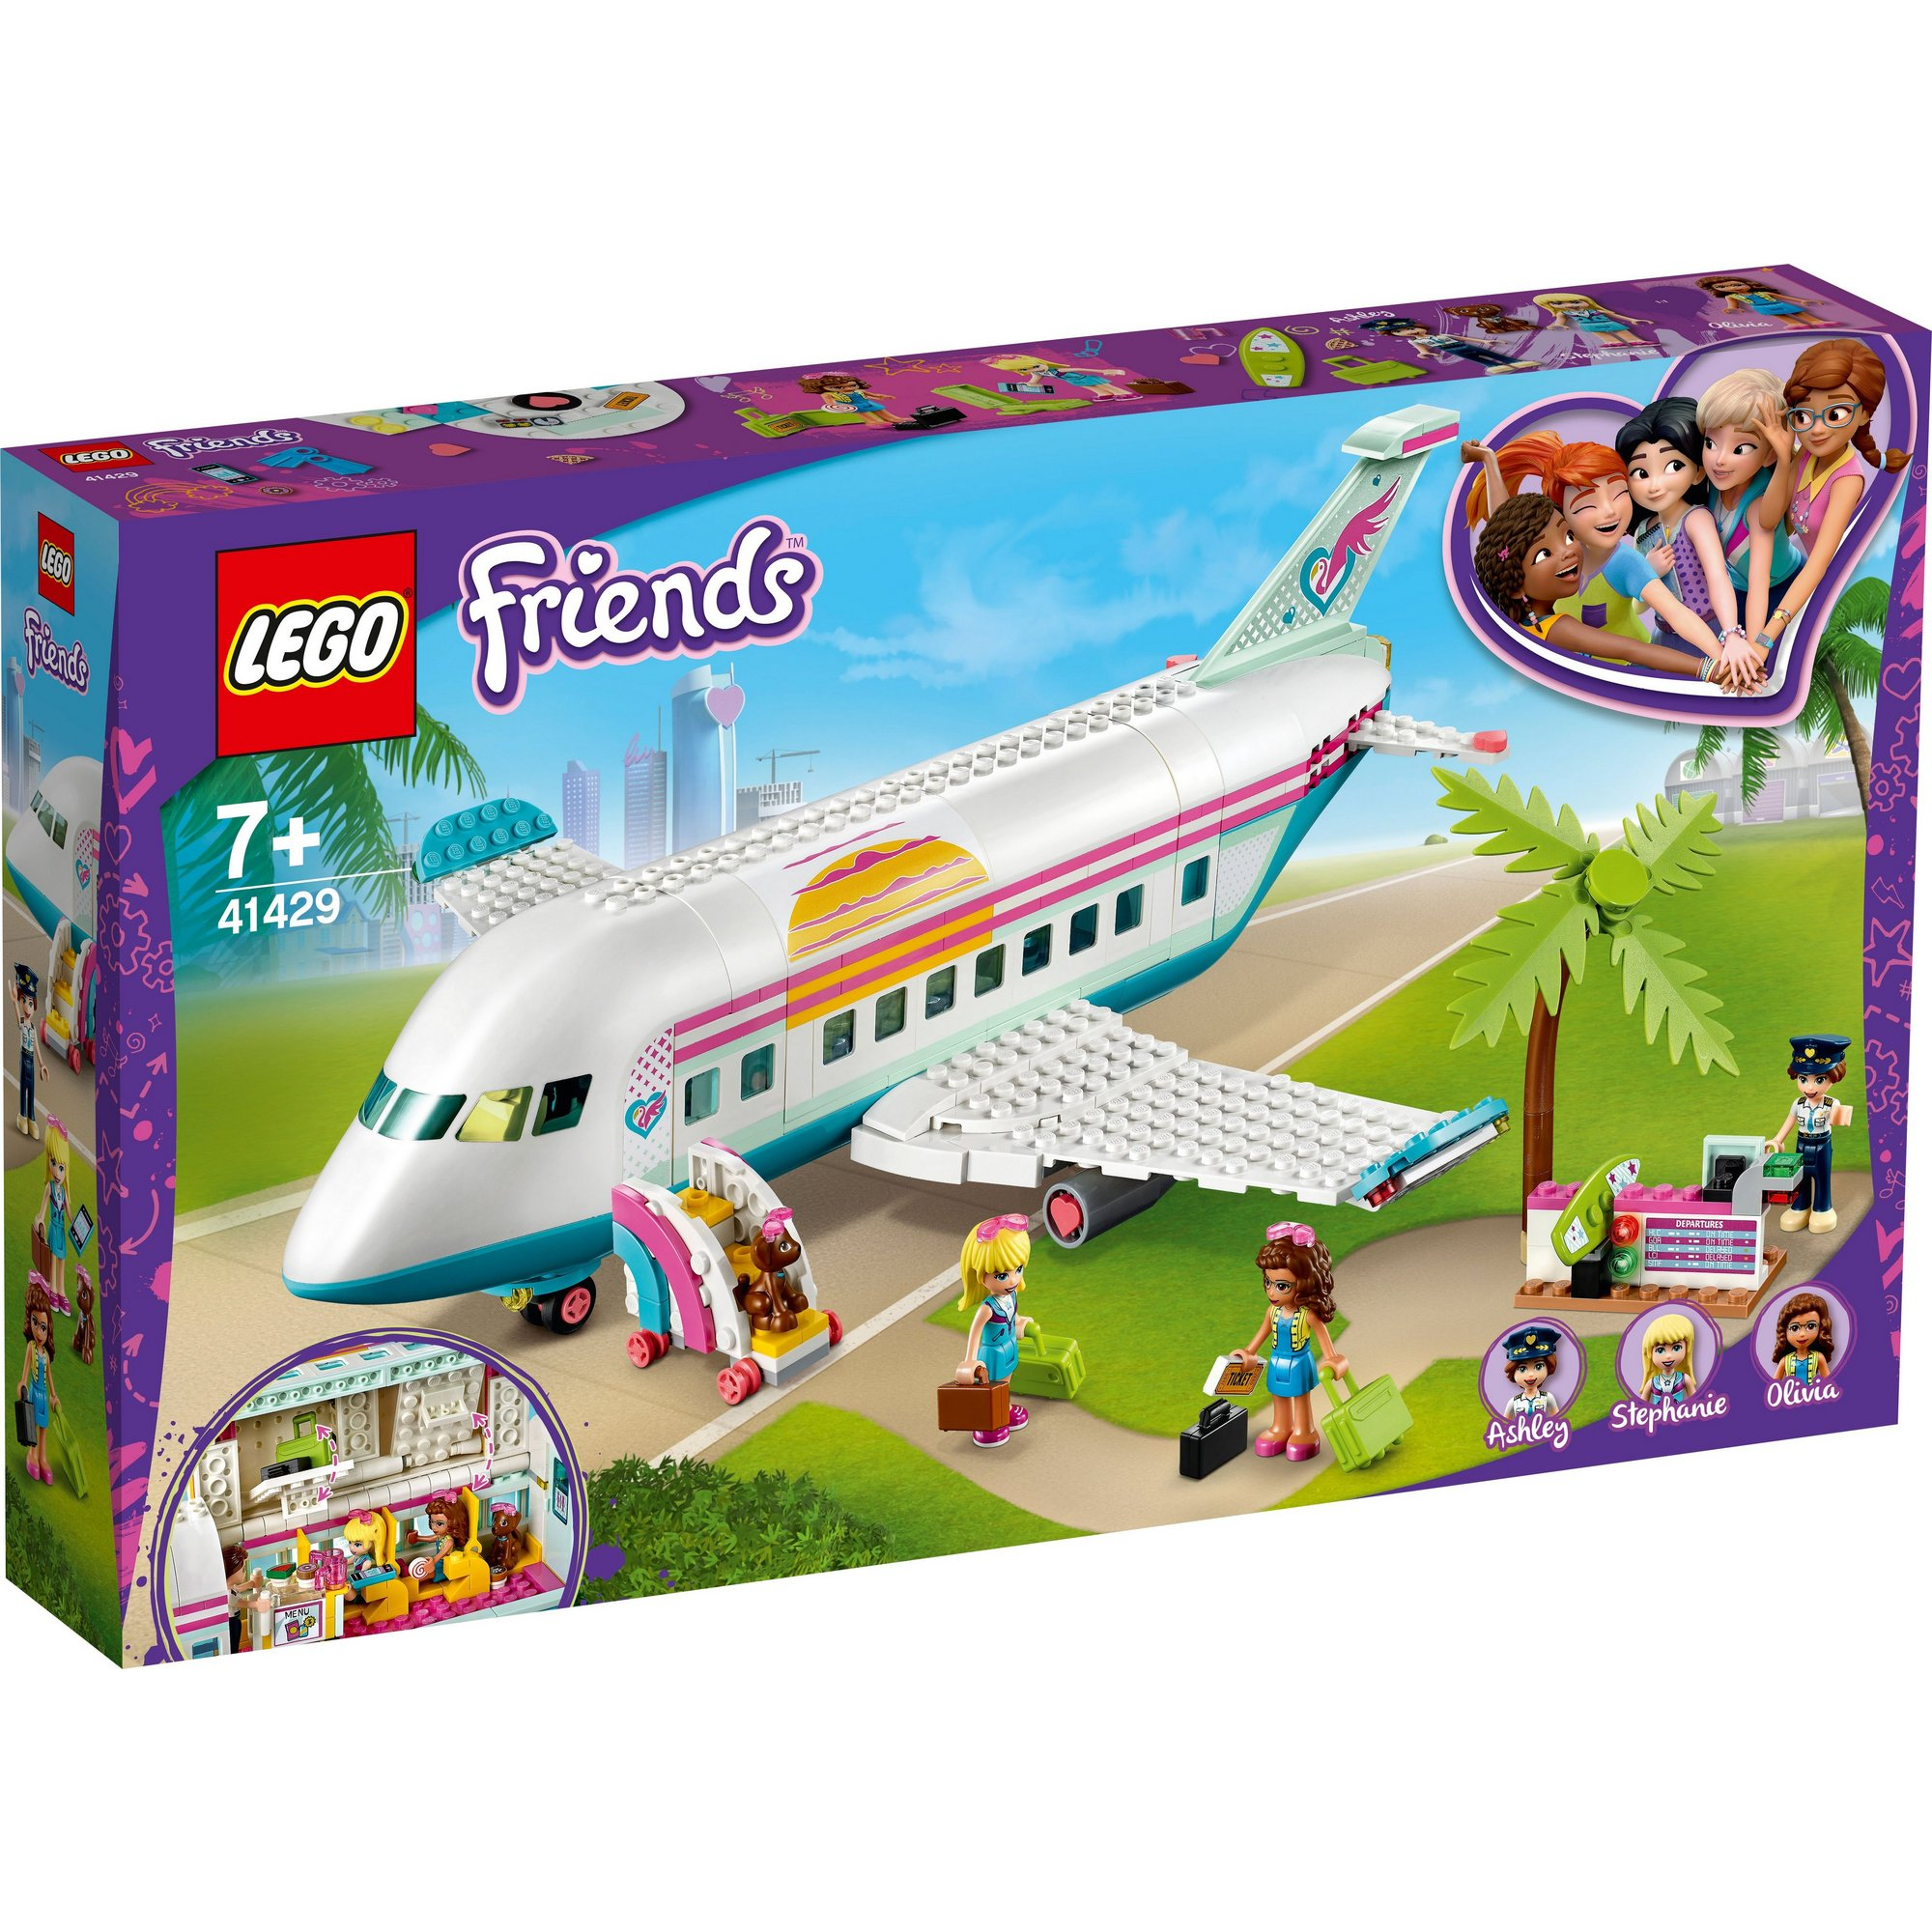 Image of LEGO Friends Heartlake City Airplane